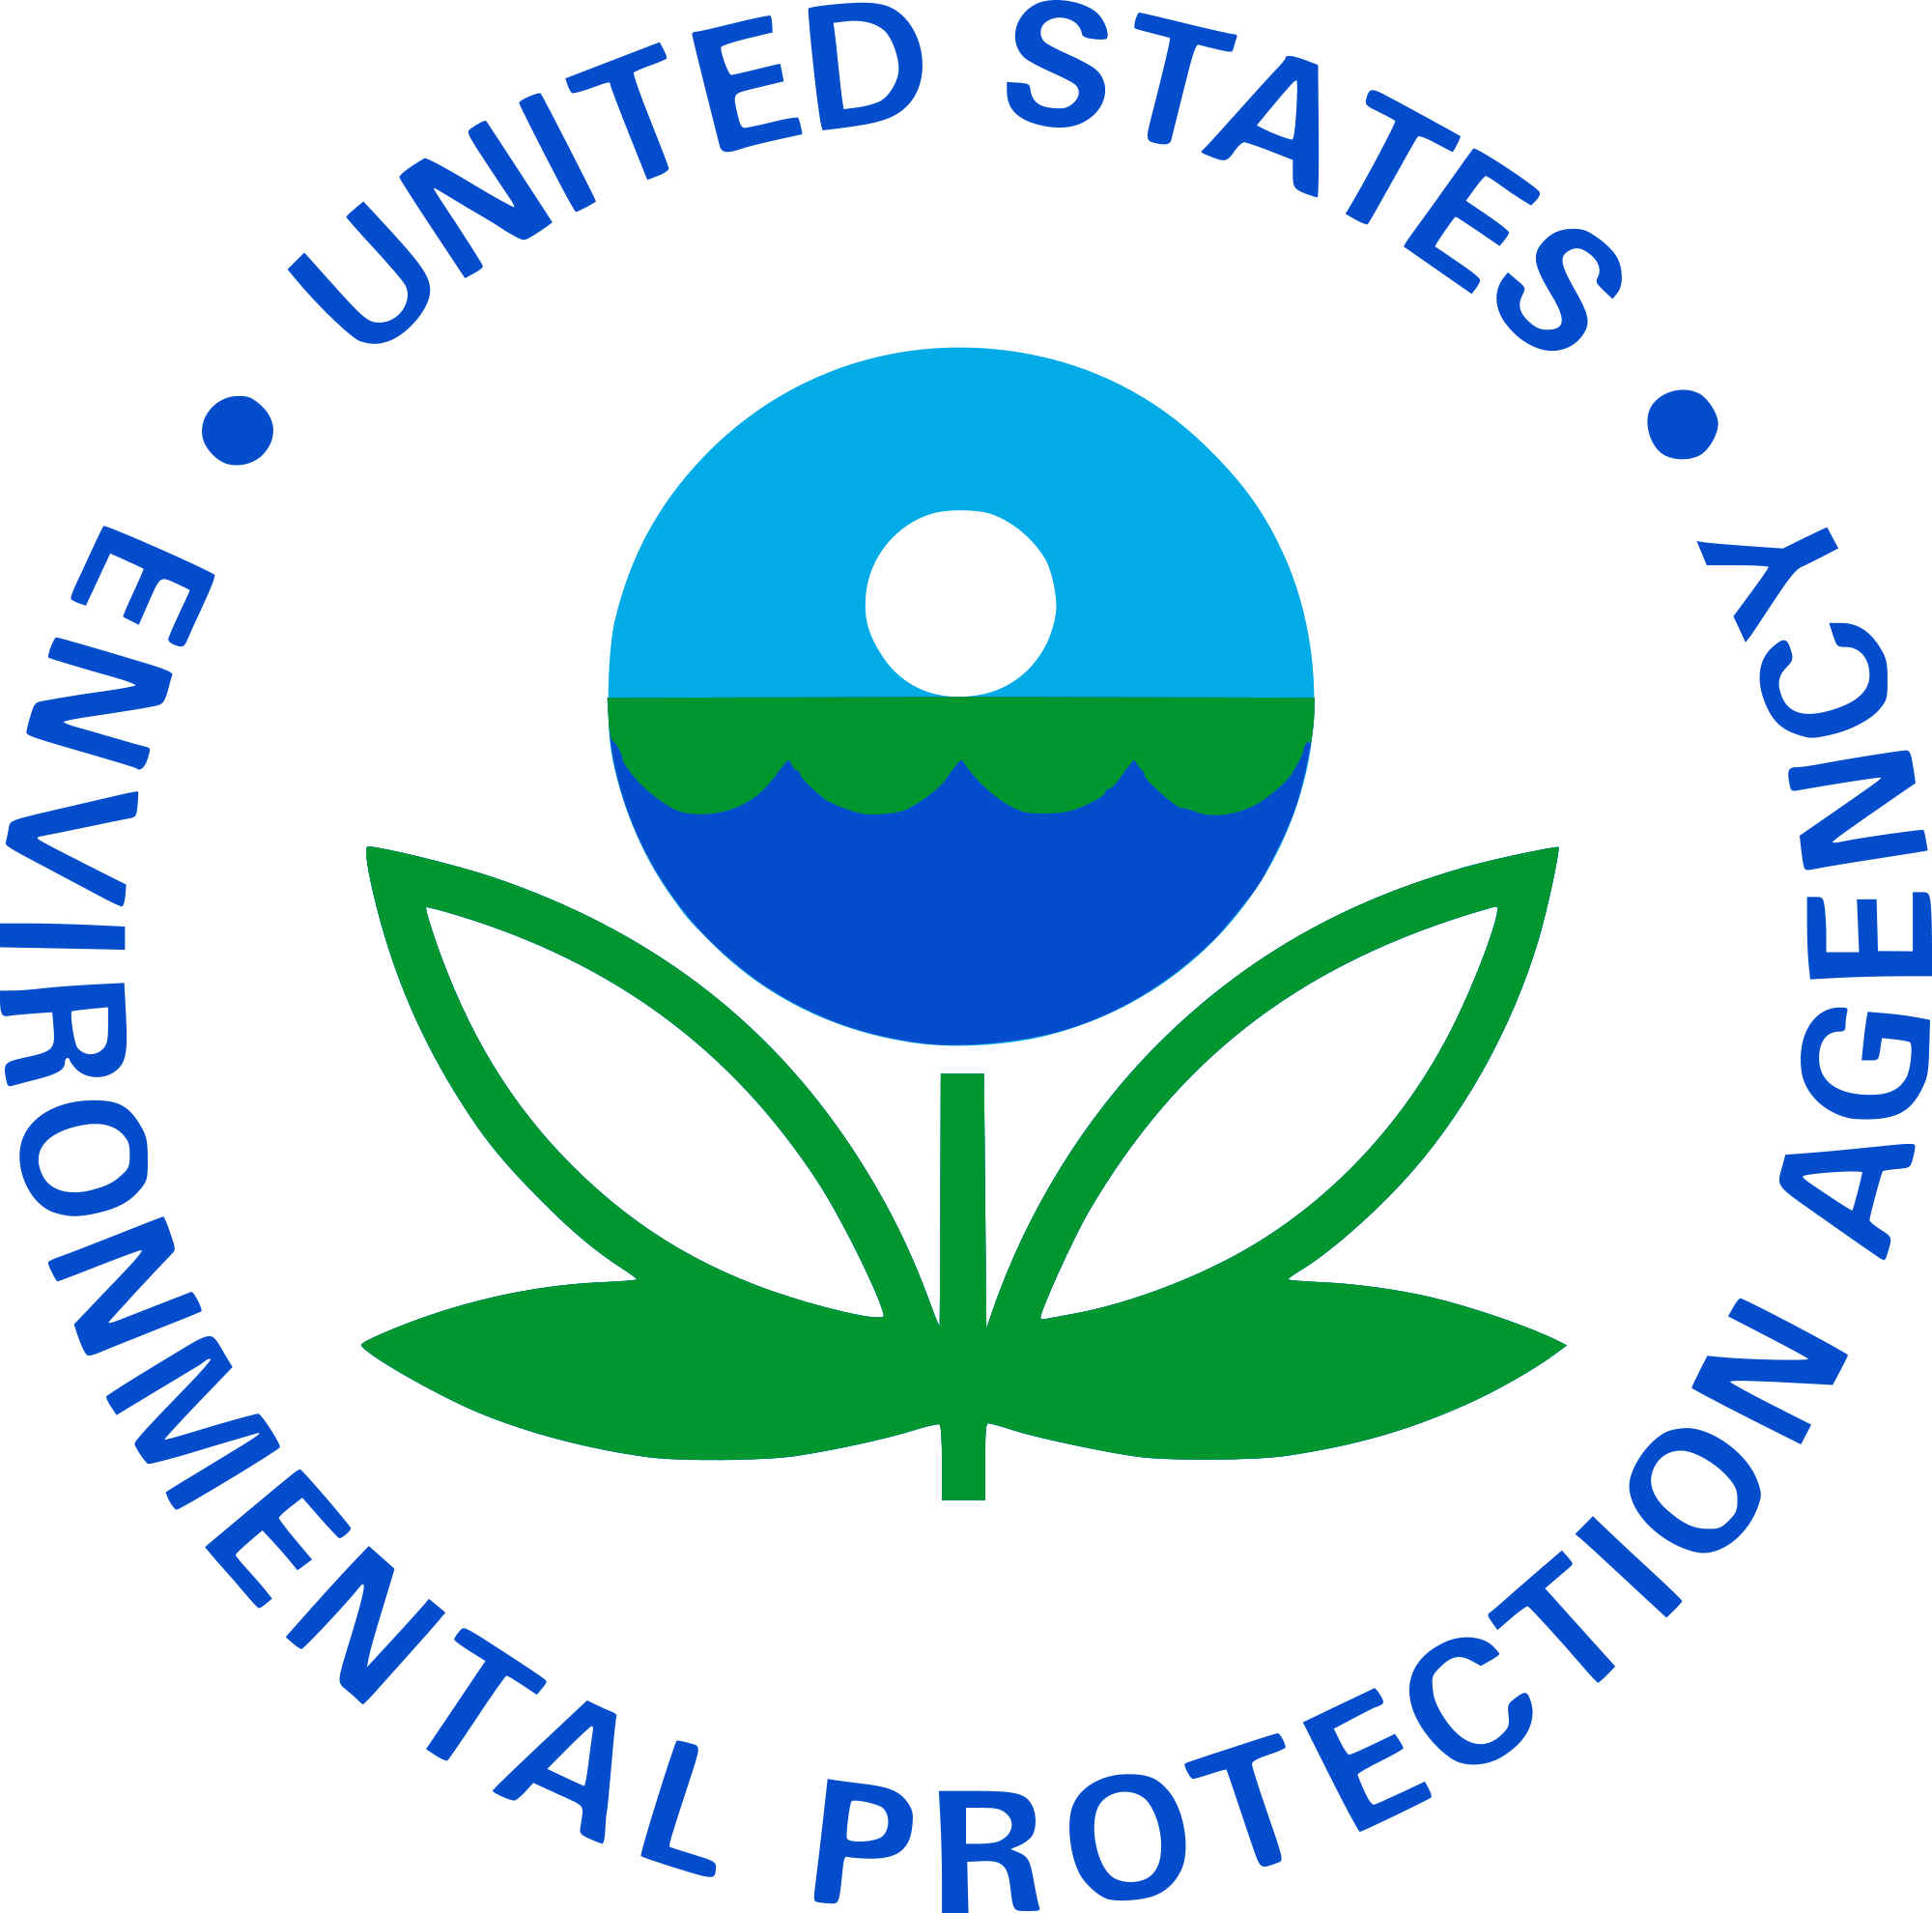 StratComm Awarded Second Contract by EPA for Annual Report